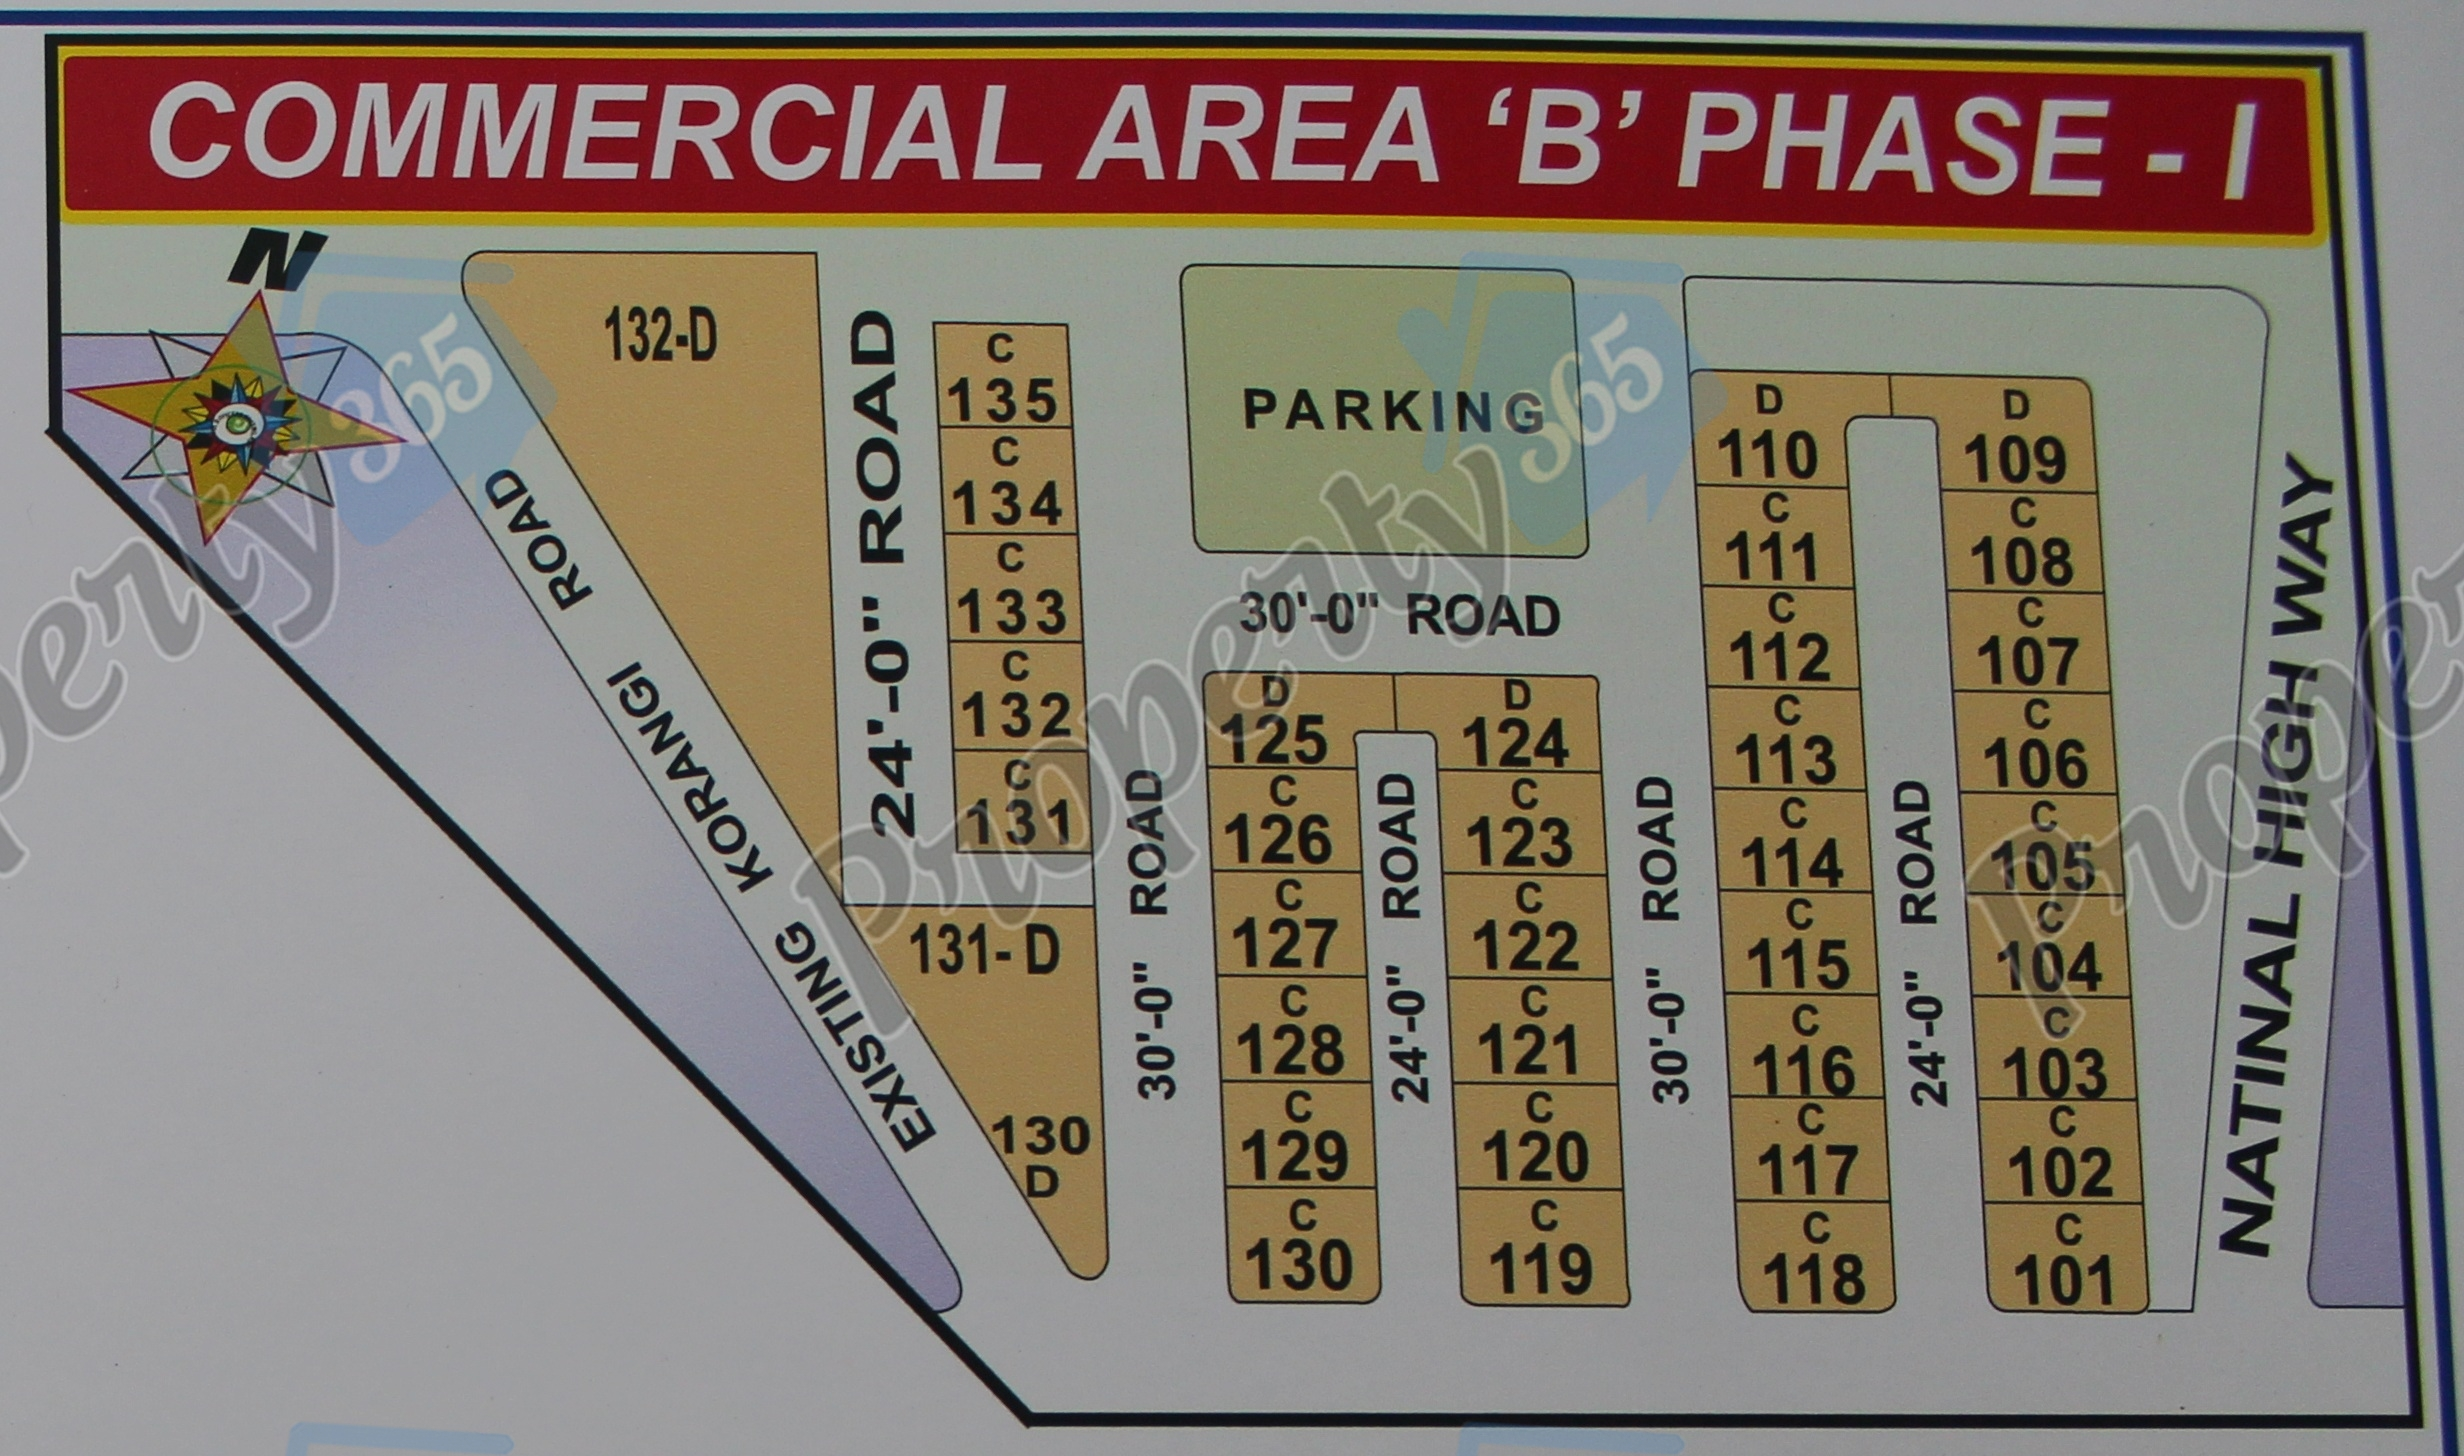 Commercial Area B Phase 1 (B Market)